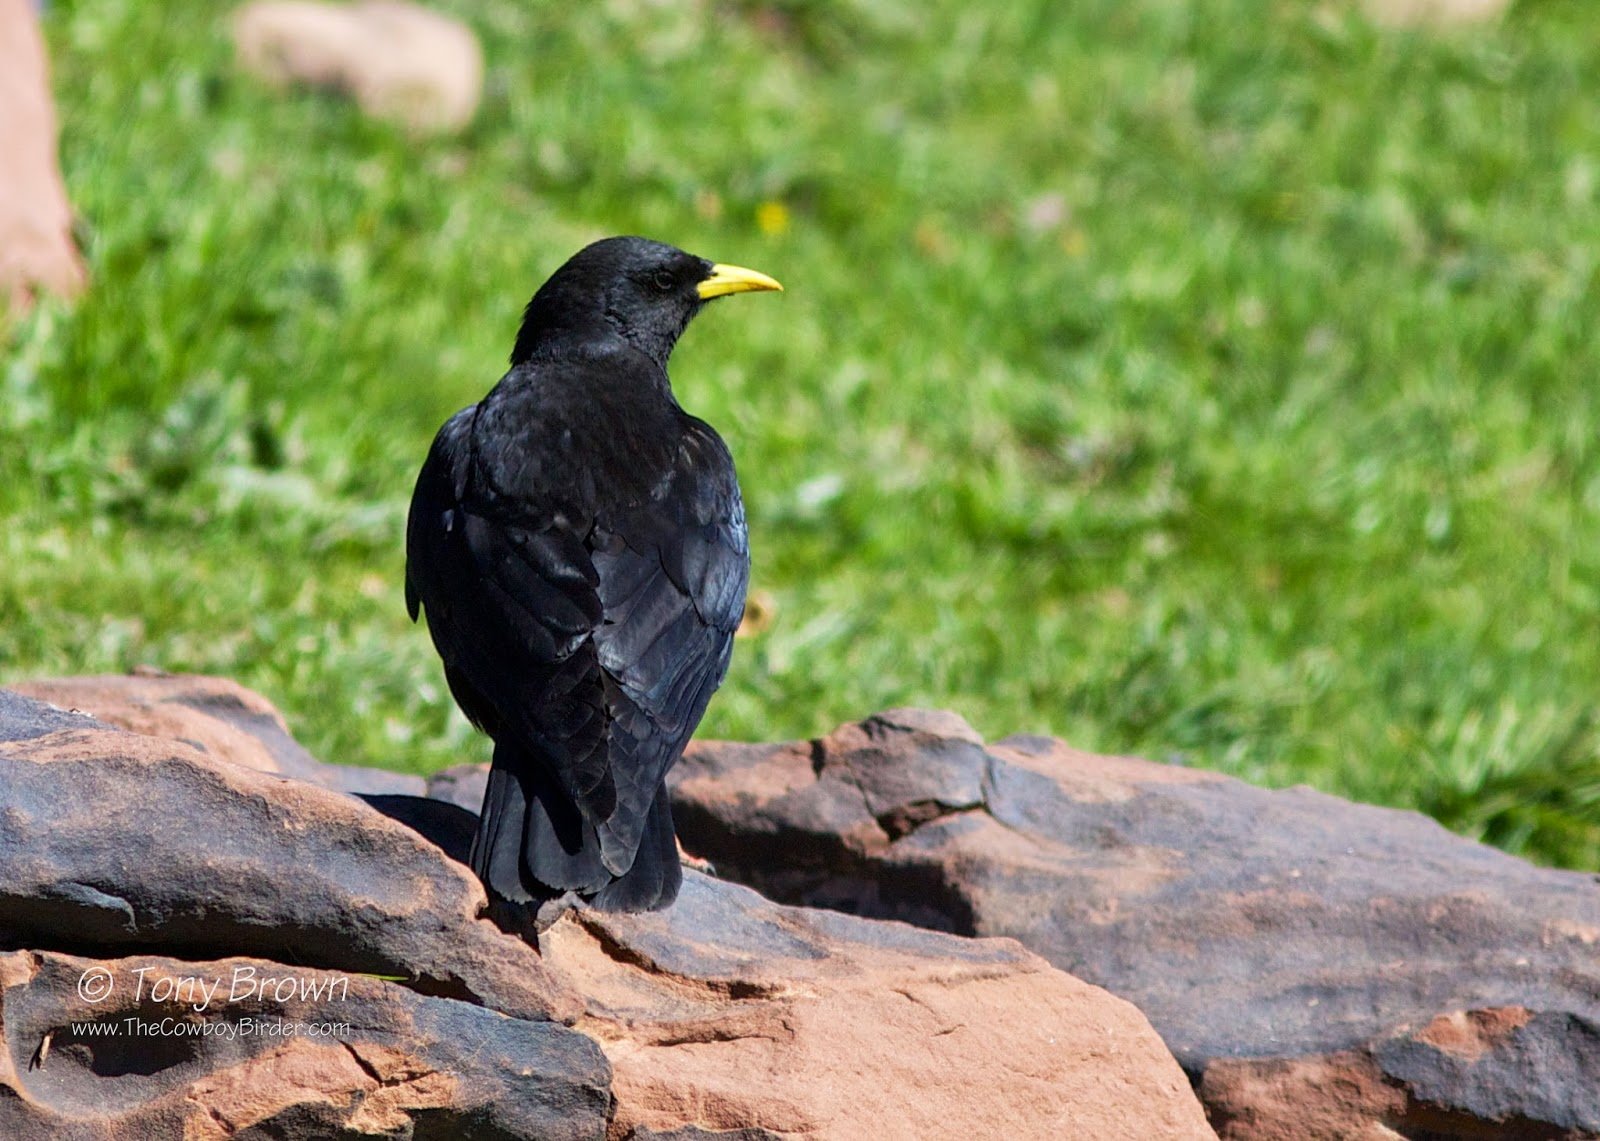 Oukaimeden, Morocco, Yellow-billed Chough